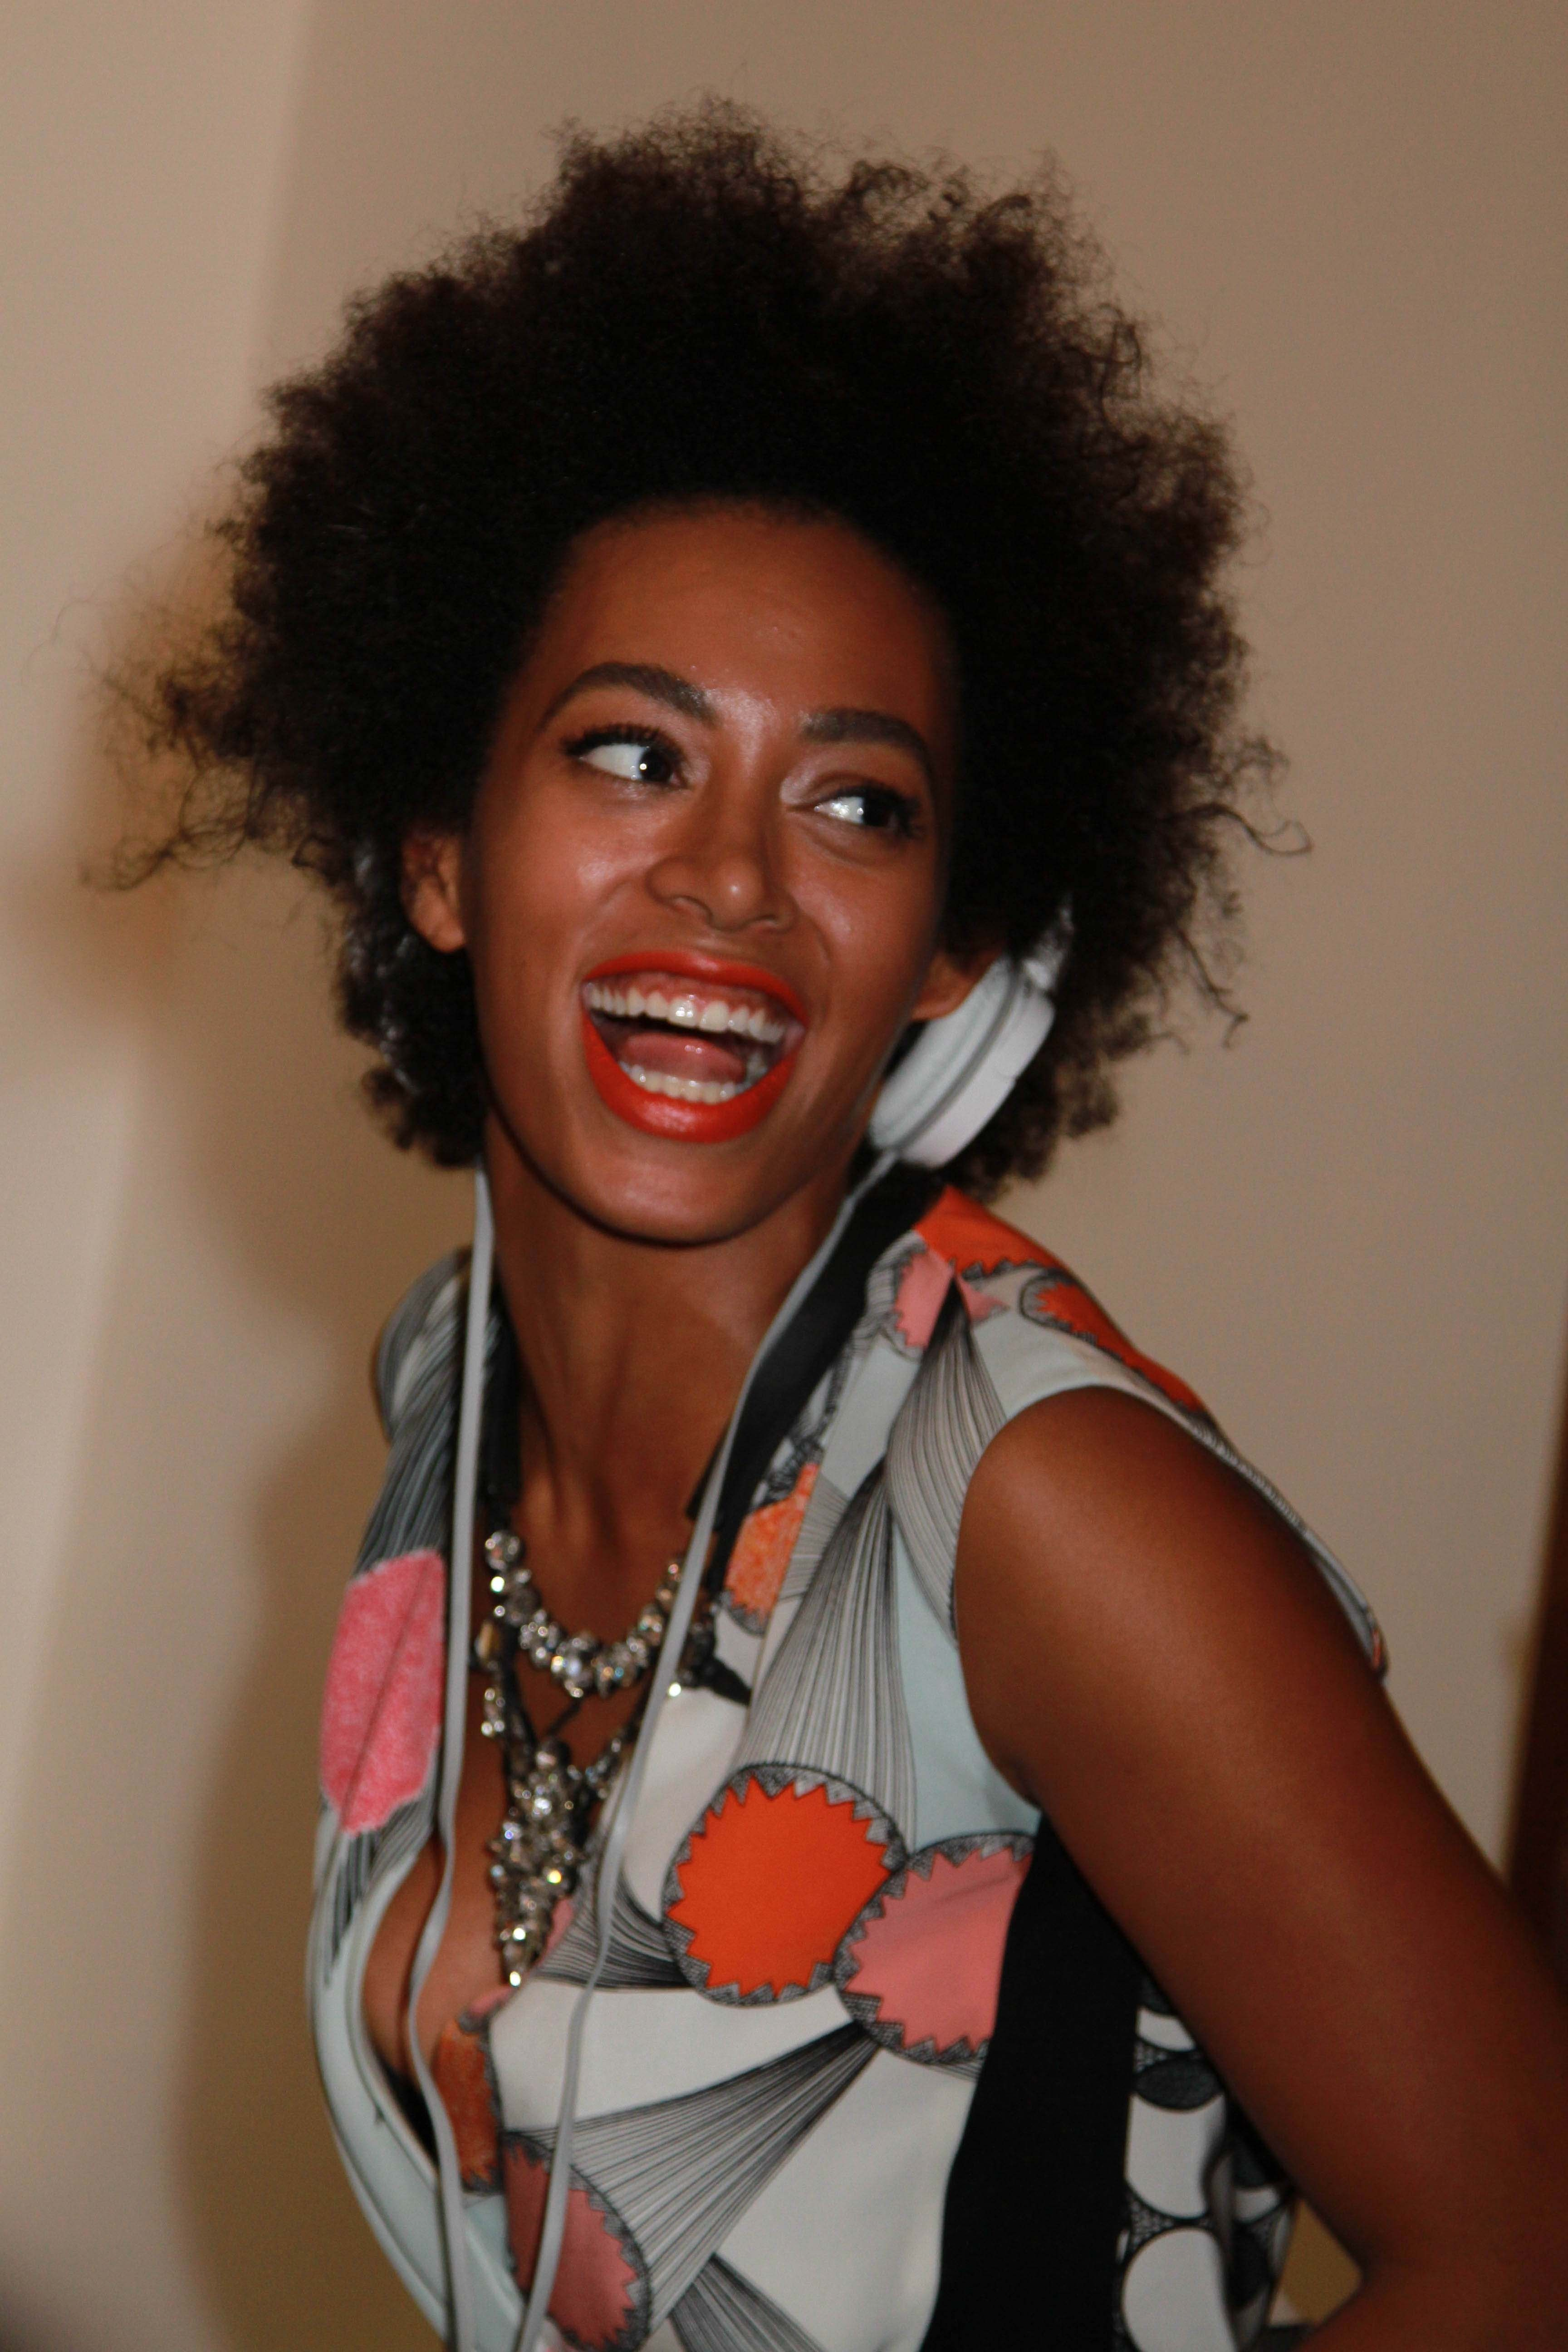 Solange with short natural hair sheus everything in the world